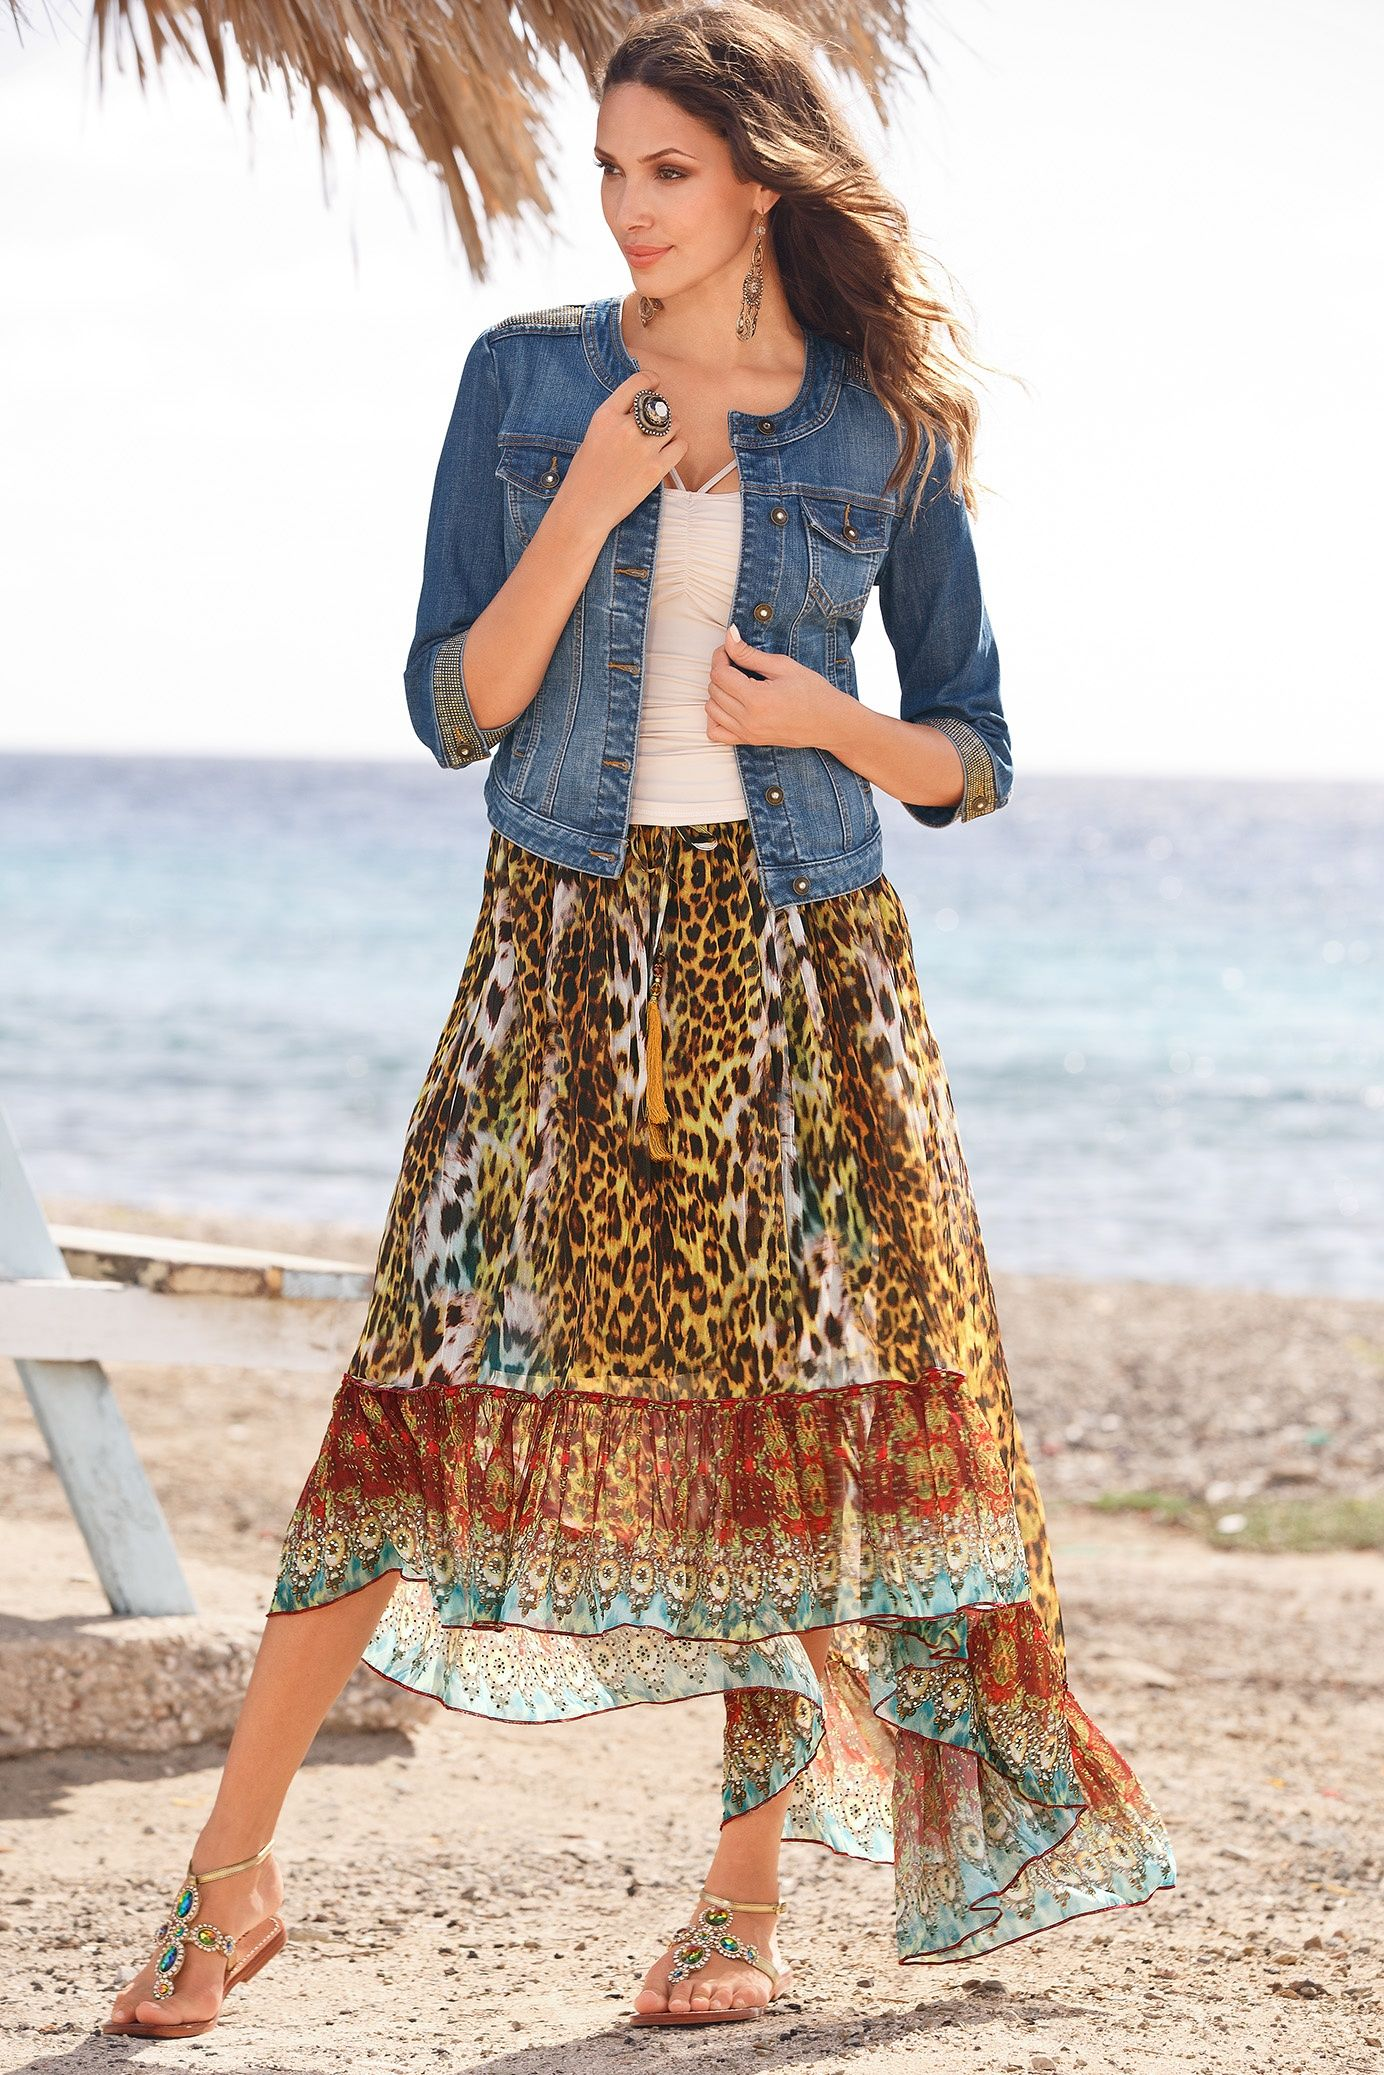 Embellished leopard hi-lo skirt. Perfectly packable Piece for a Curaçao getaway. #BostonProper #SpringFashion